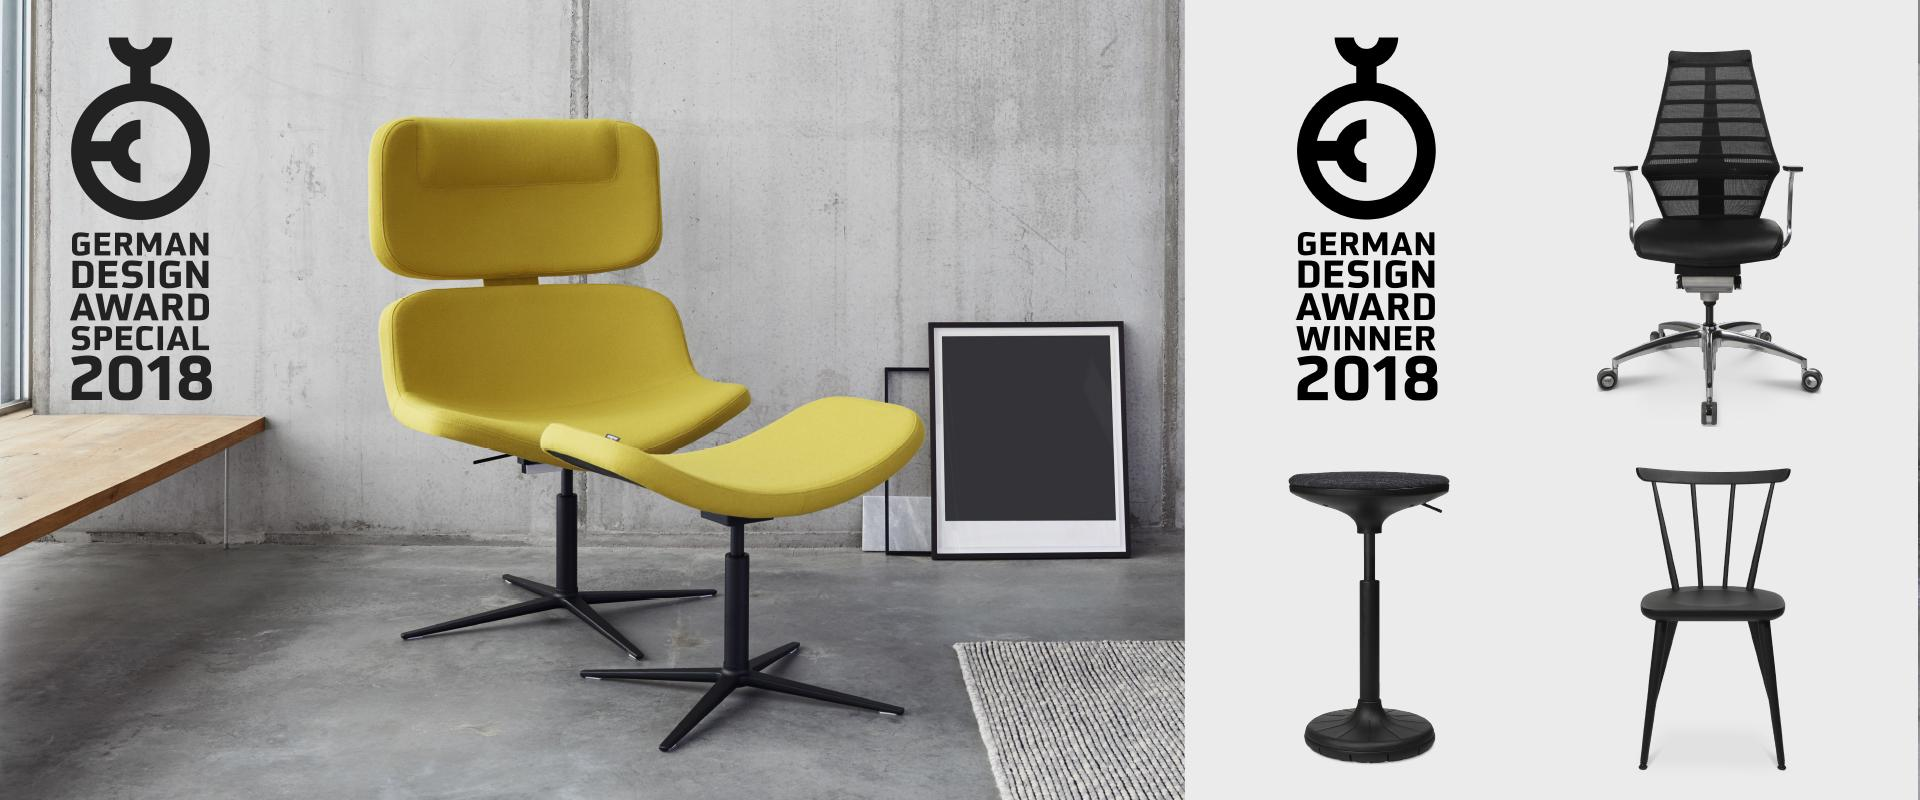 The W Lounge Sound Chair Was Also Awarded A Special Mention In The Furniture  Category.